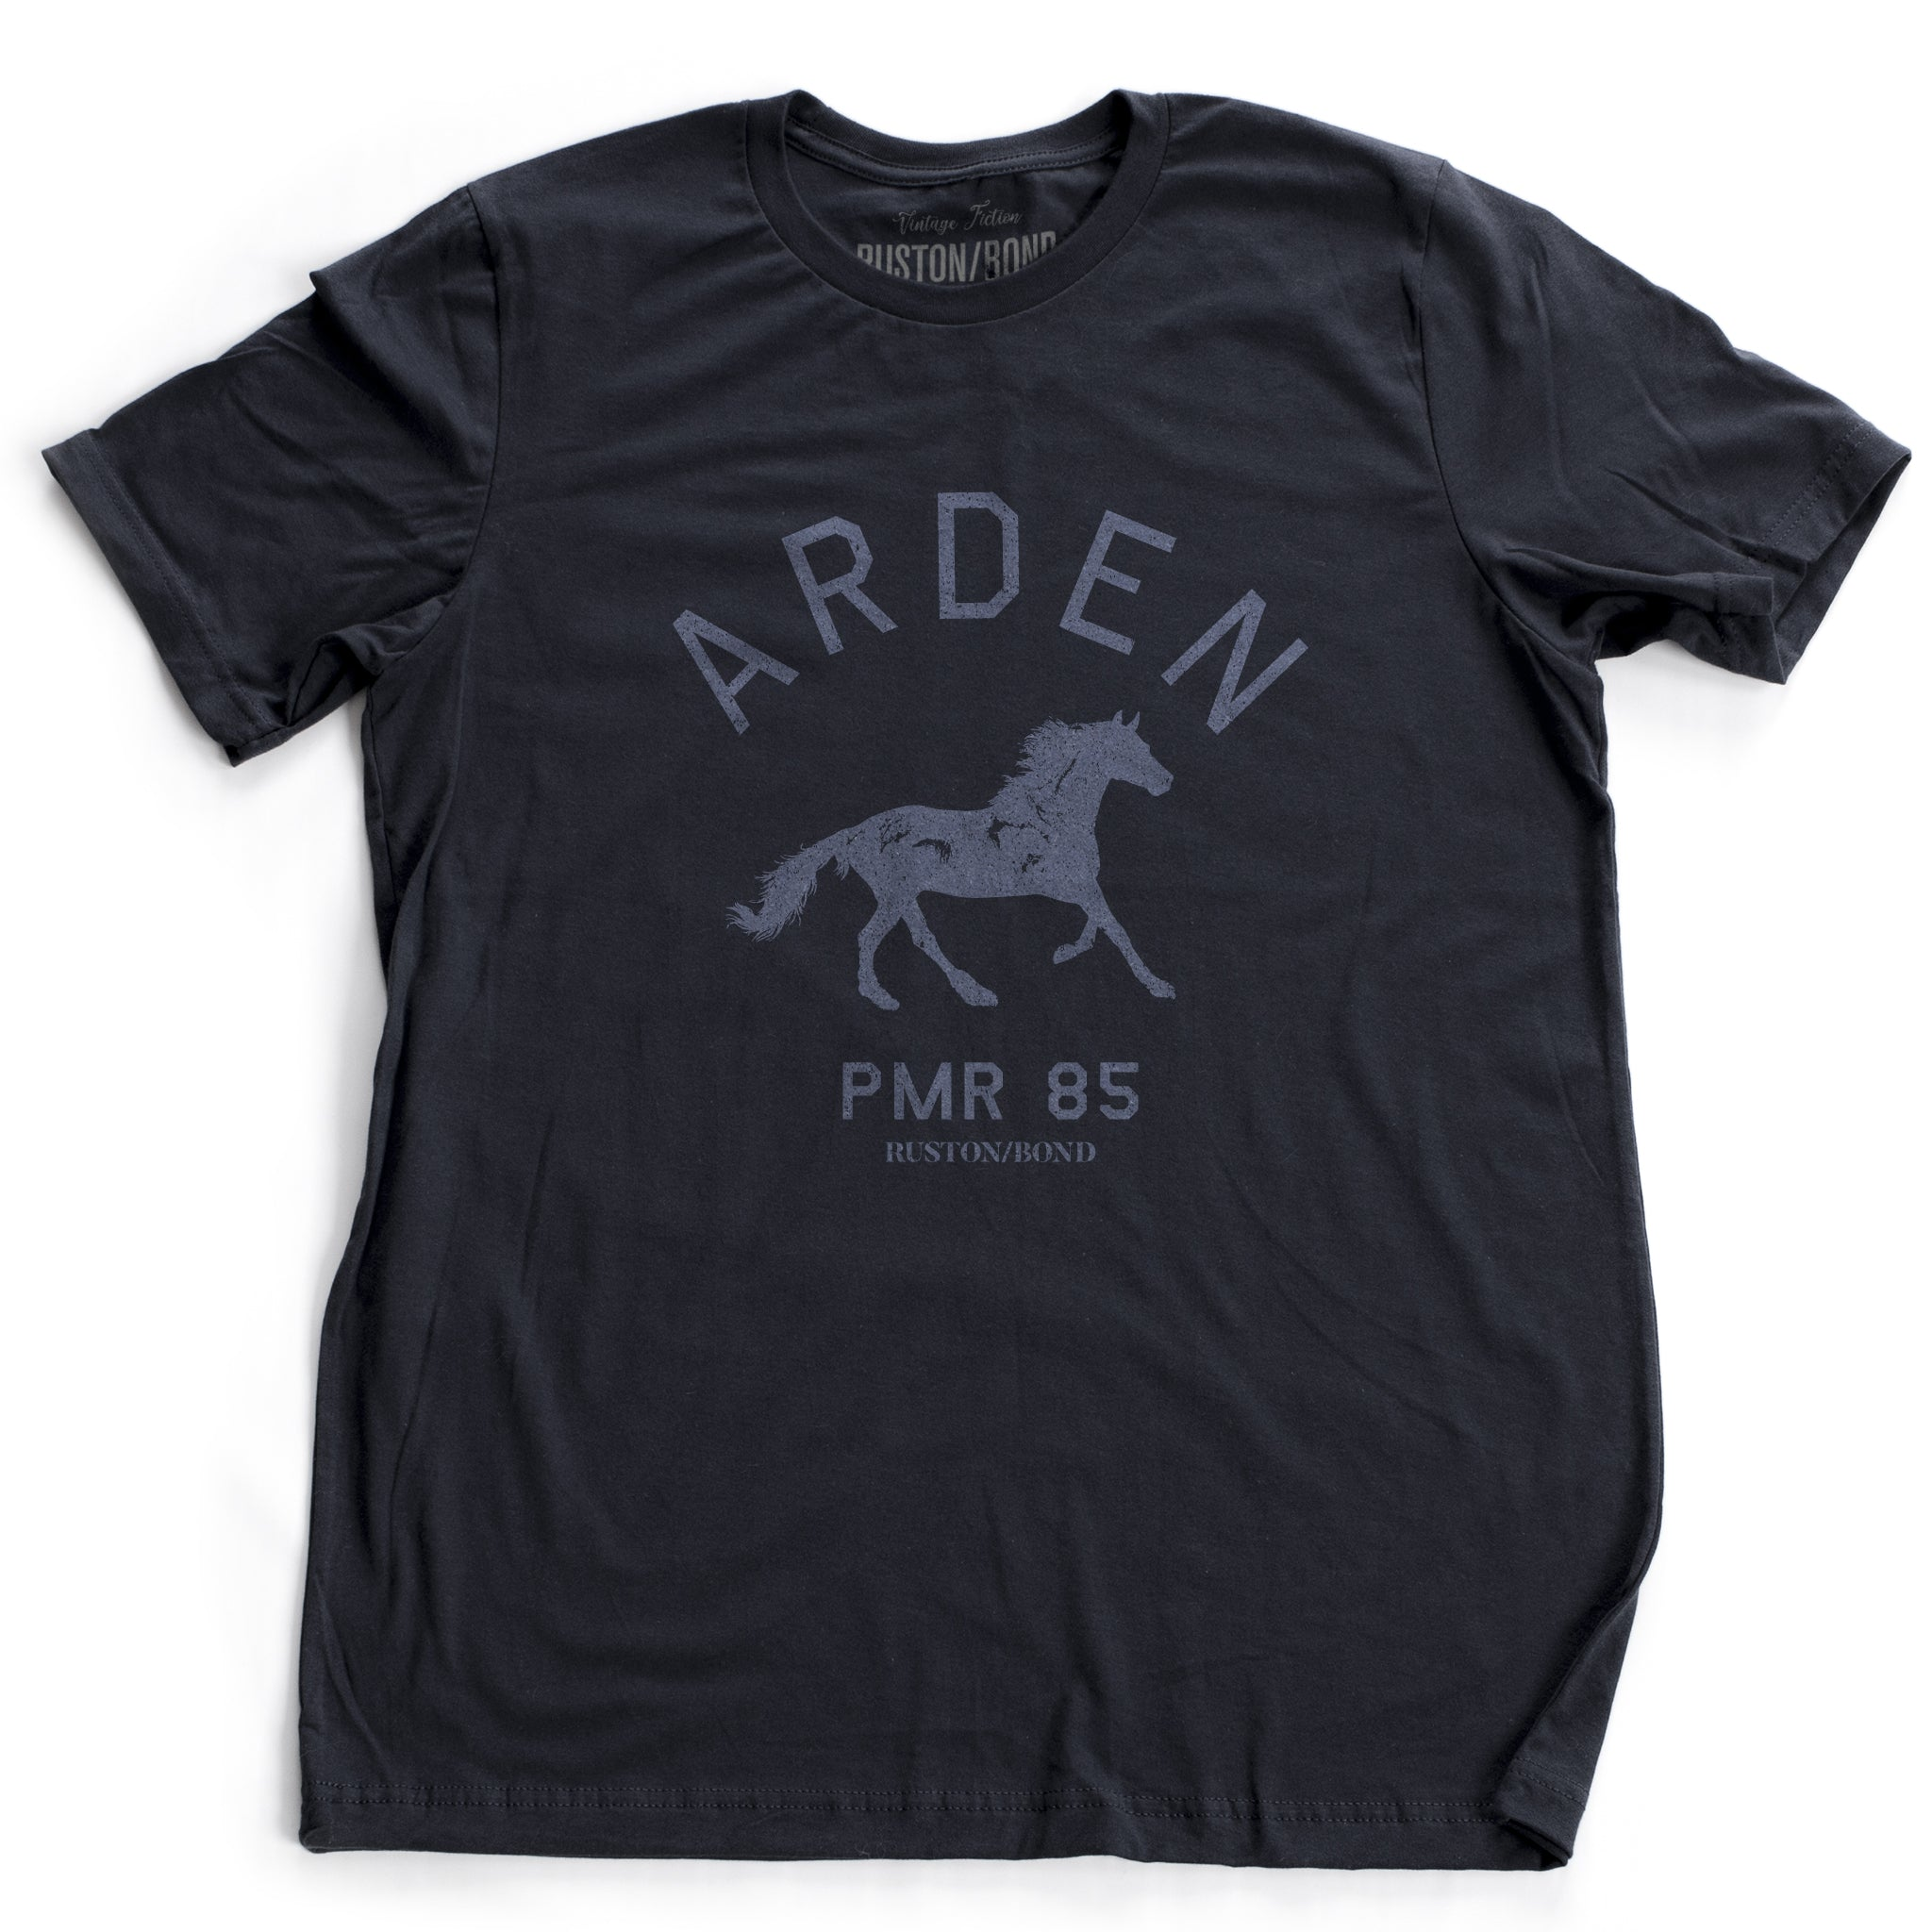 Navy Blue vintage, retro-inspired fashion t-shirt, with elegant classic typography and a running horse with an equestrian, horse-riding theme. From wolfsaint.net